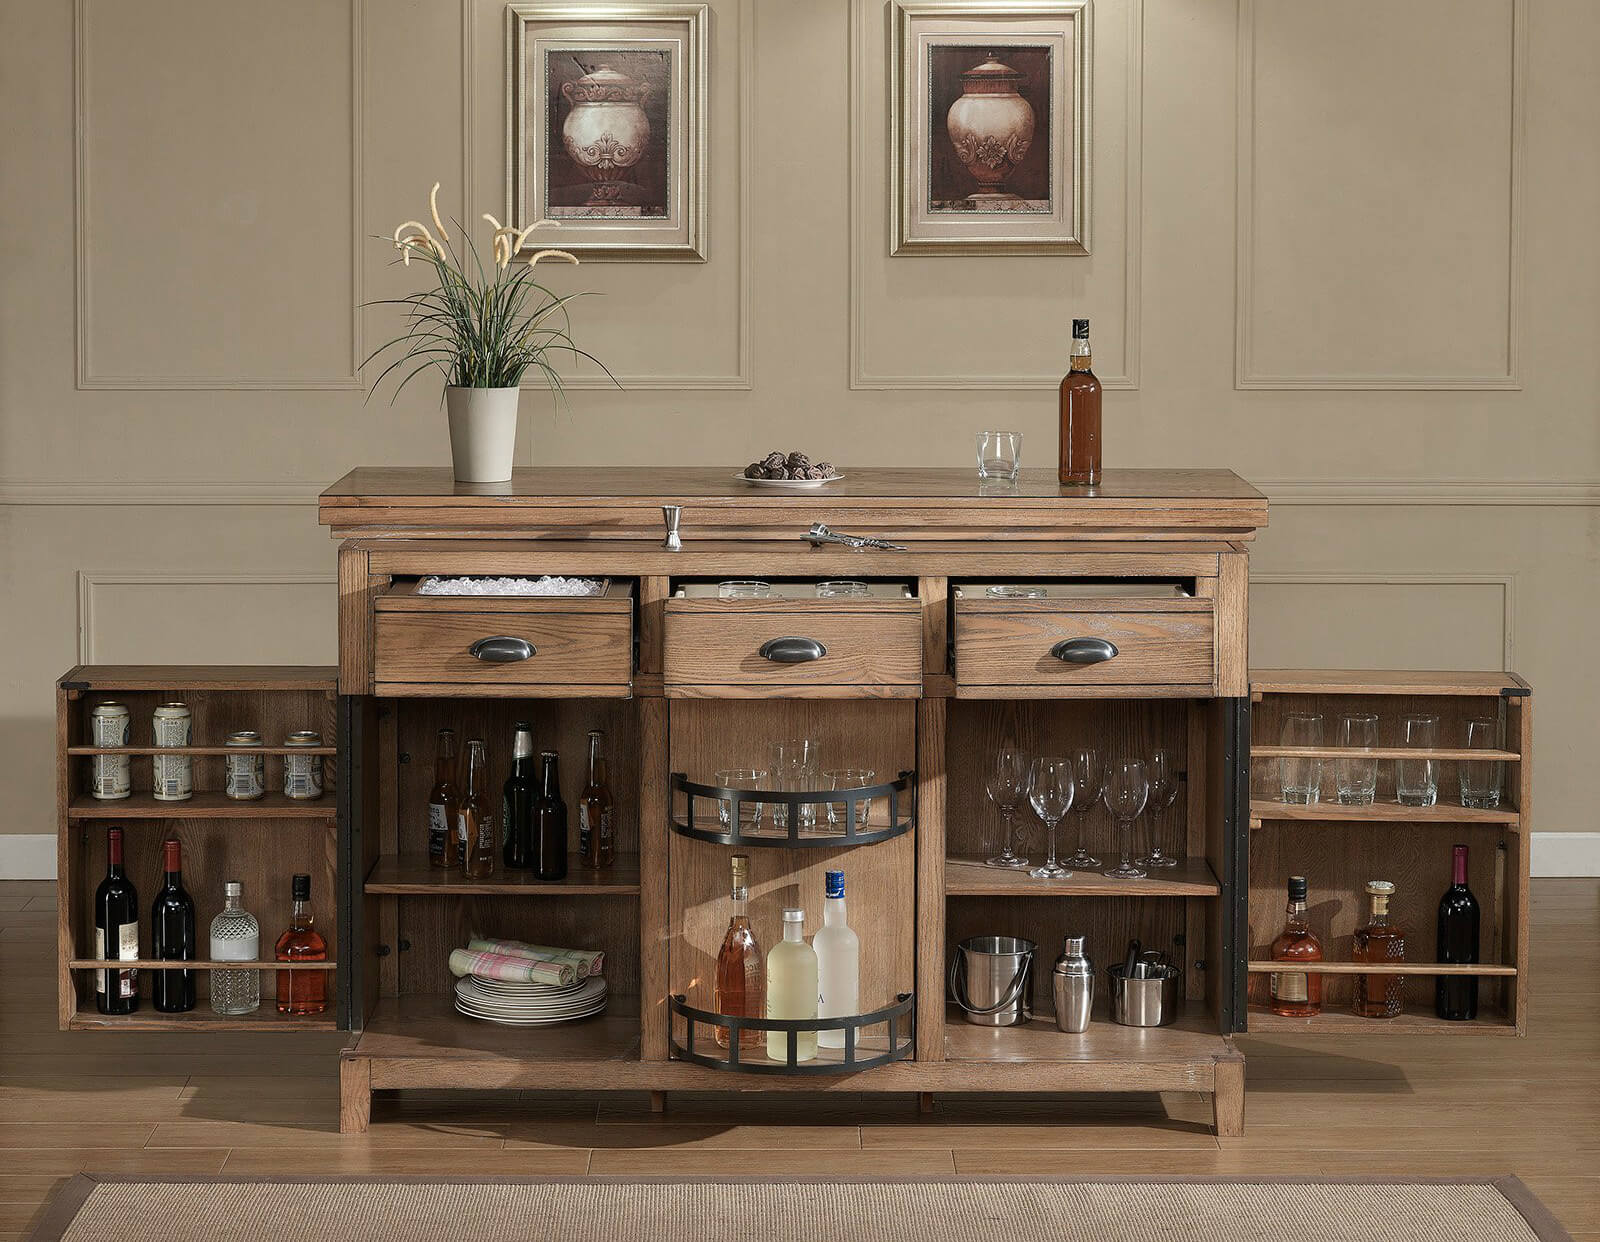 As you can see, the amount of storage in this rustic home bar cabinet unit is substantial. However, notice that it doesn't include a wine rack. In the center where the larger bottles are place, that's a Lazy Susan, which is a great storage feature.